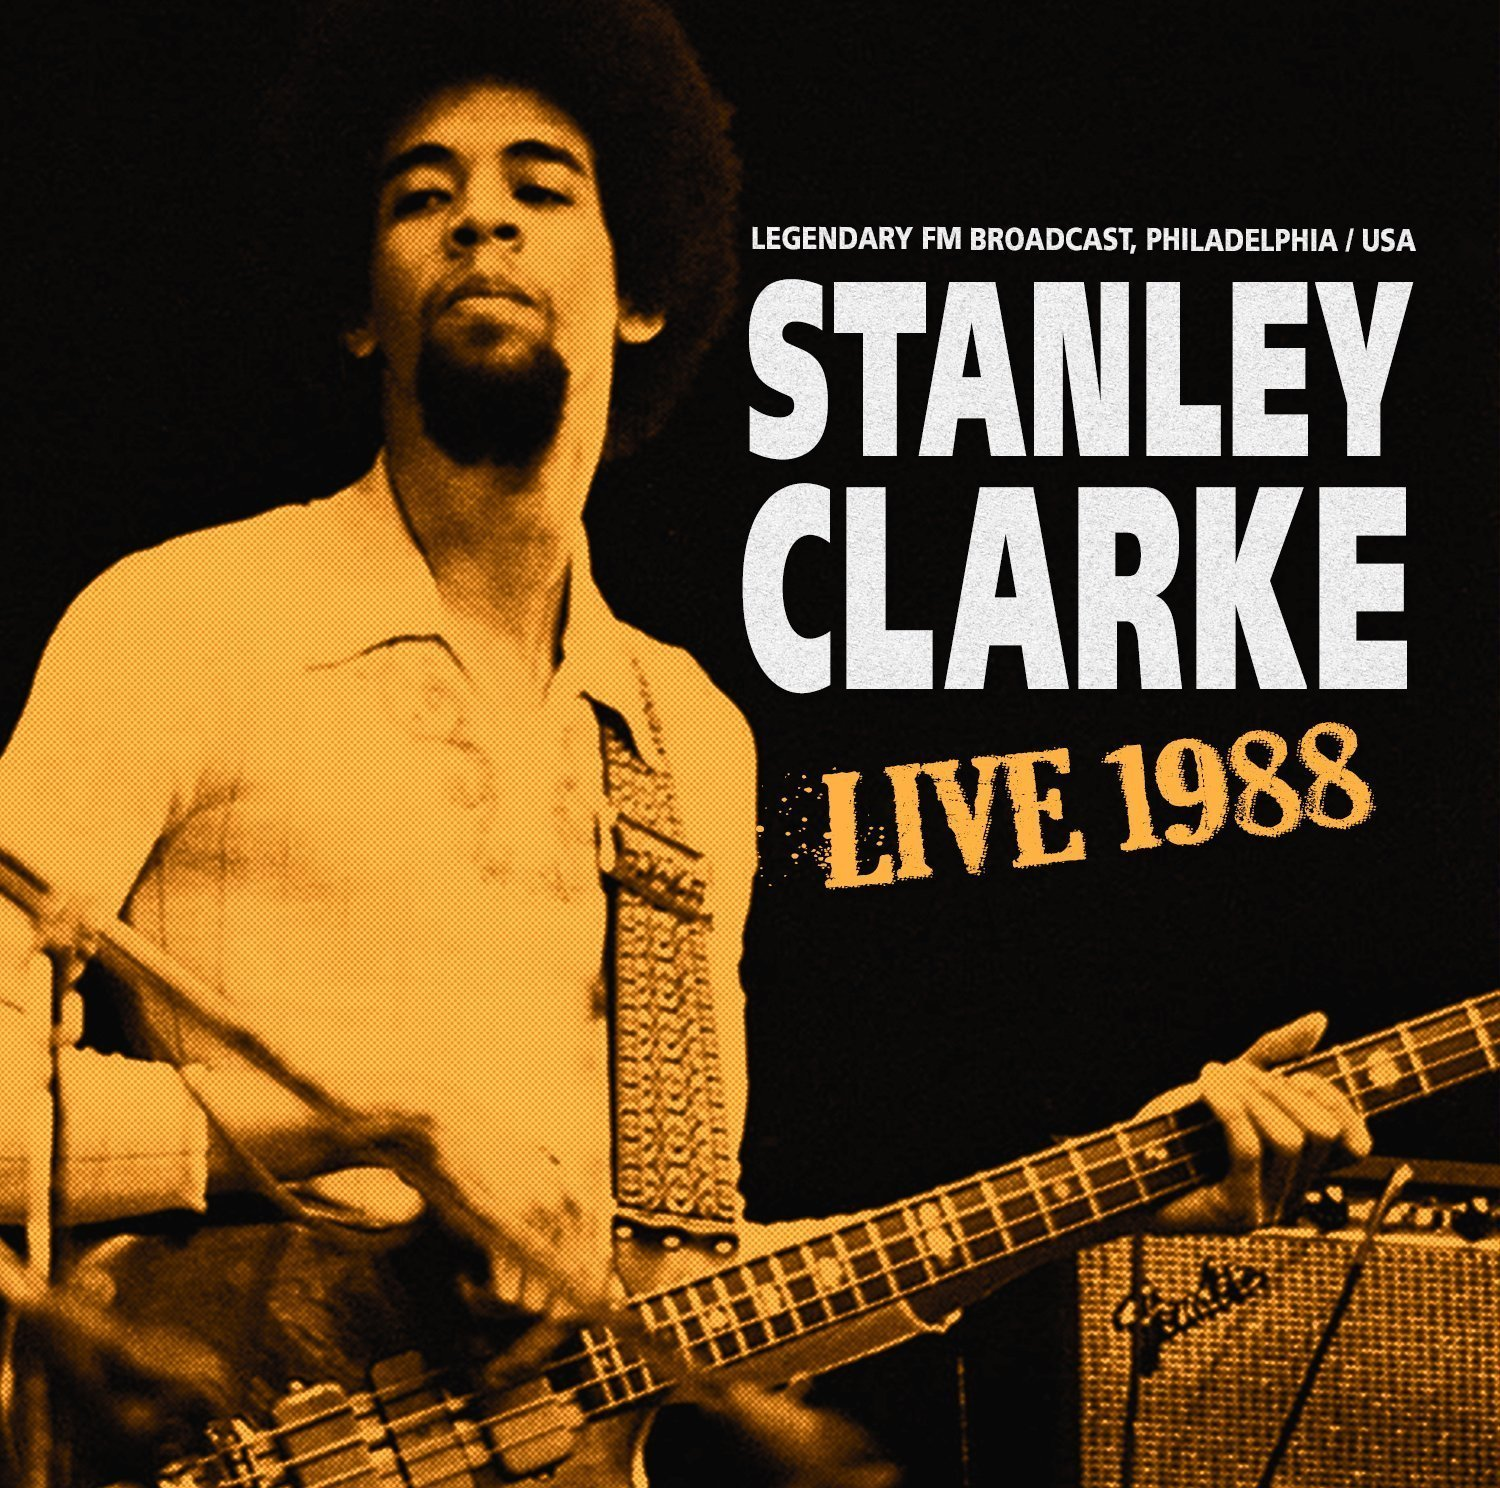 STANLEY CLARKE - Live 1988 cover